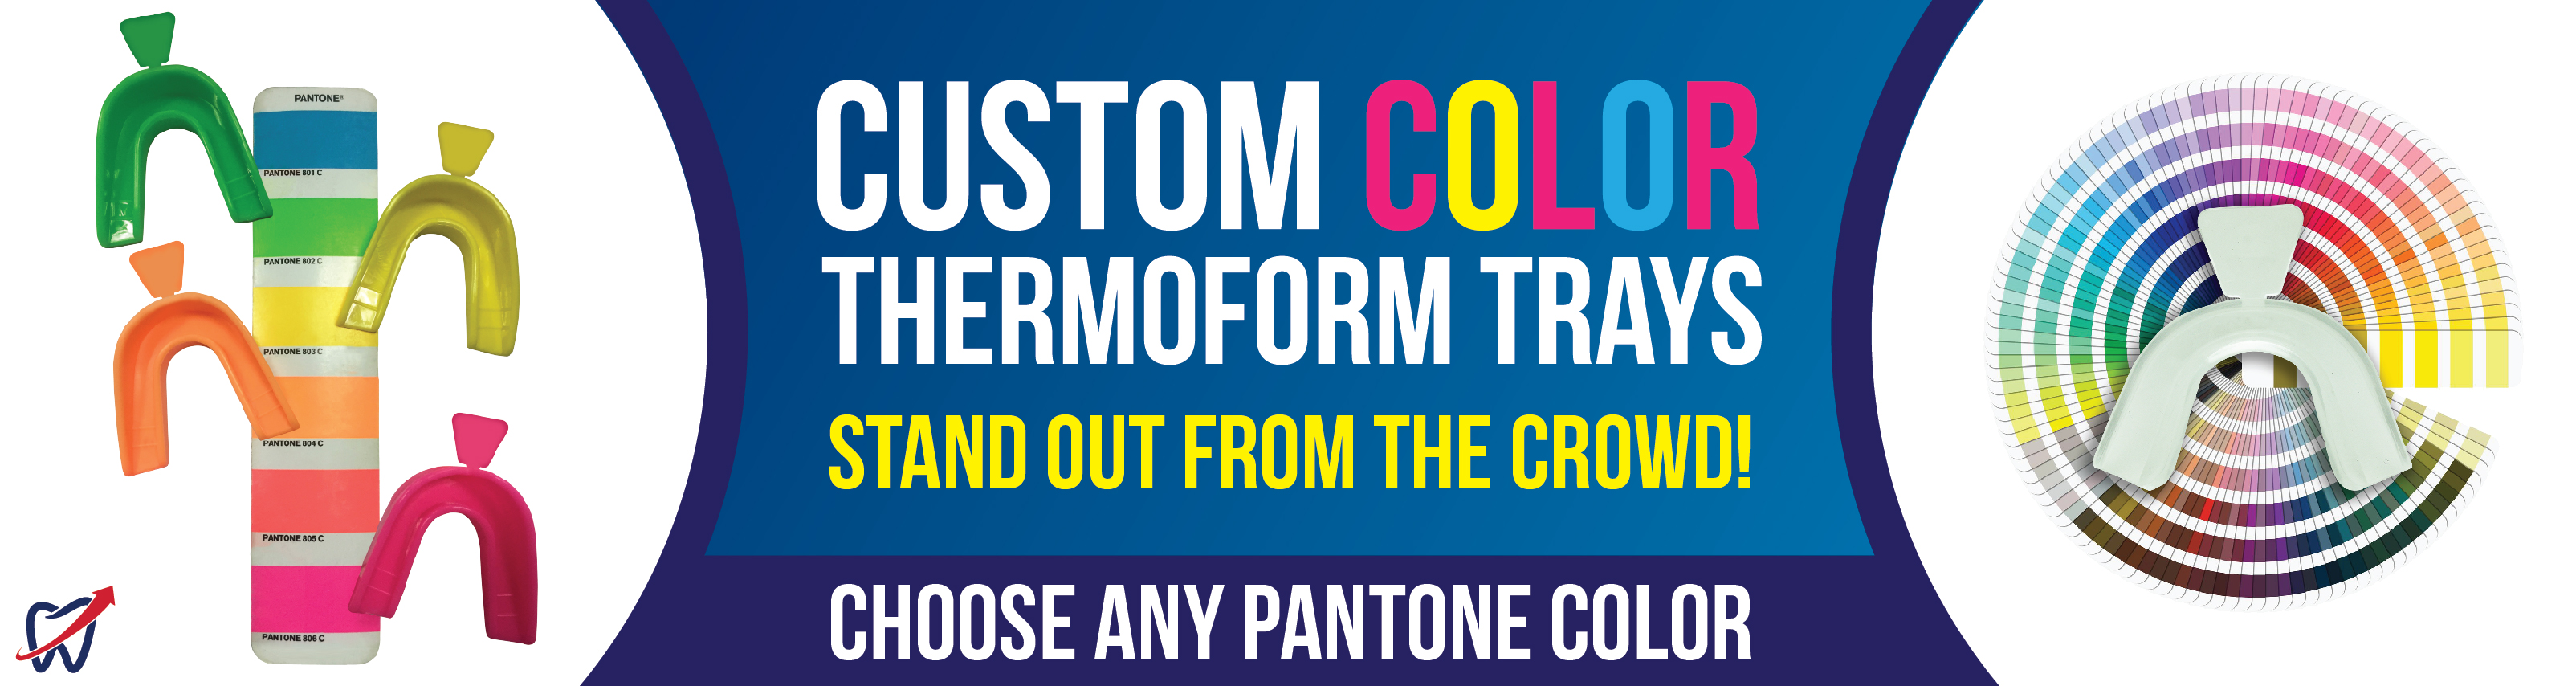 Custom Colored Heat and Form Trays. Choose ANY Pantone Color!